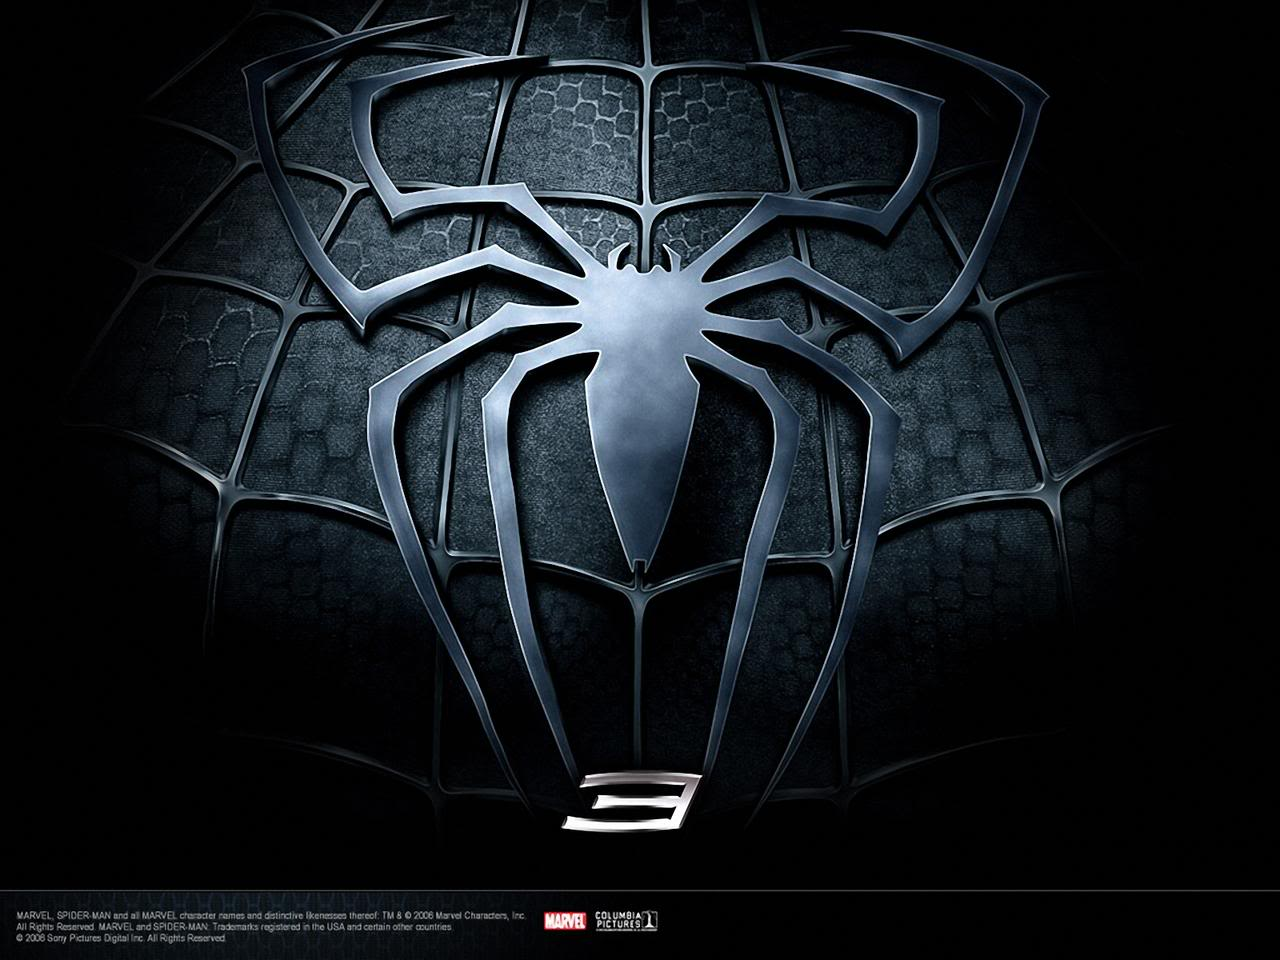 Spider-Man3Wallpaper16-1024.jpg